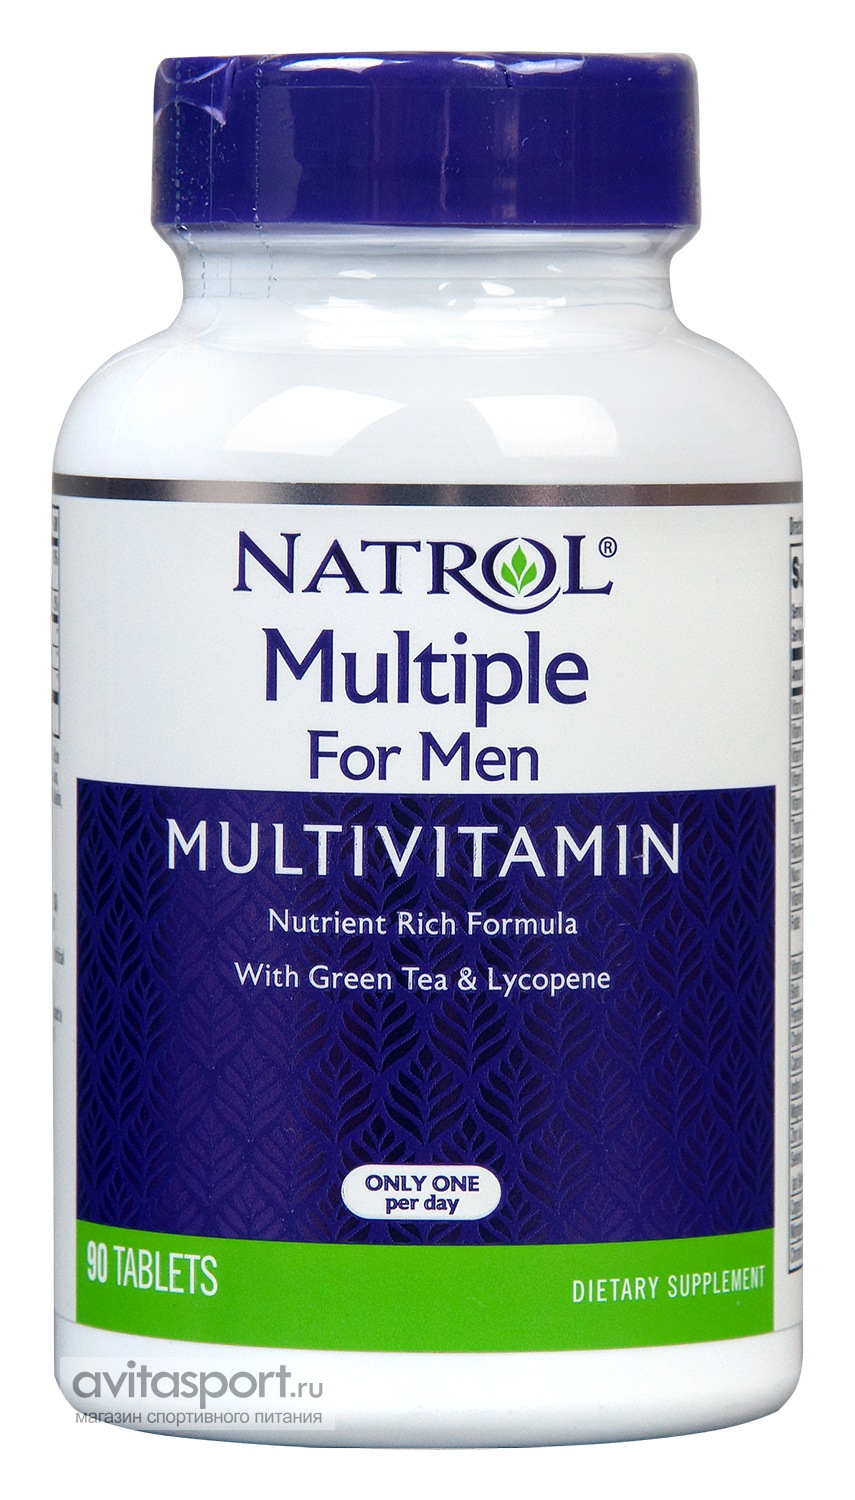 Natrol Multiple for Men 90 таблеток